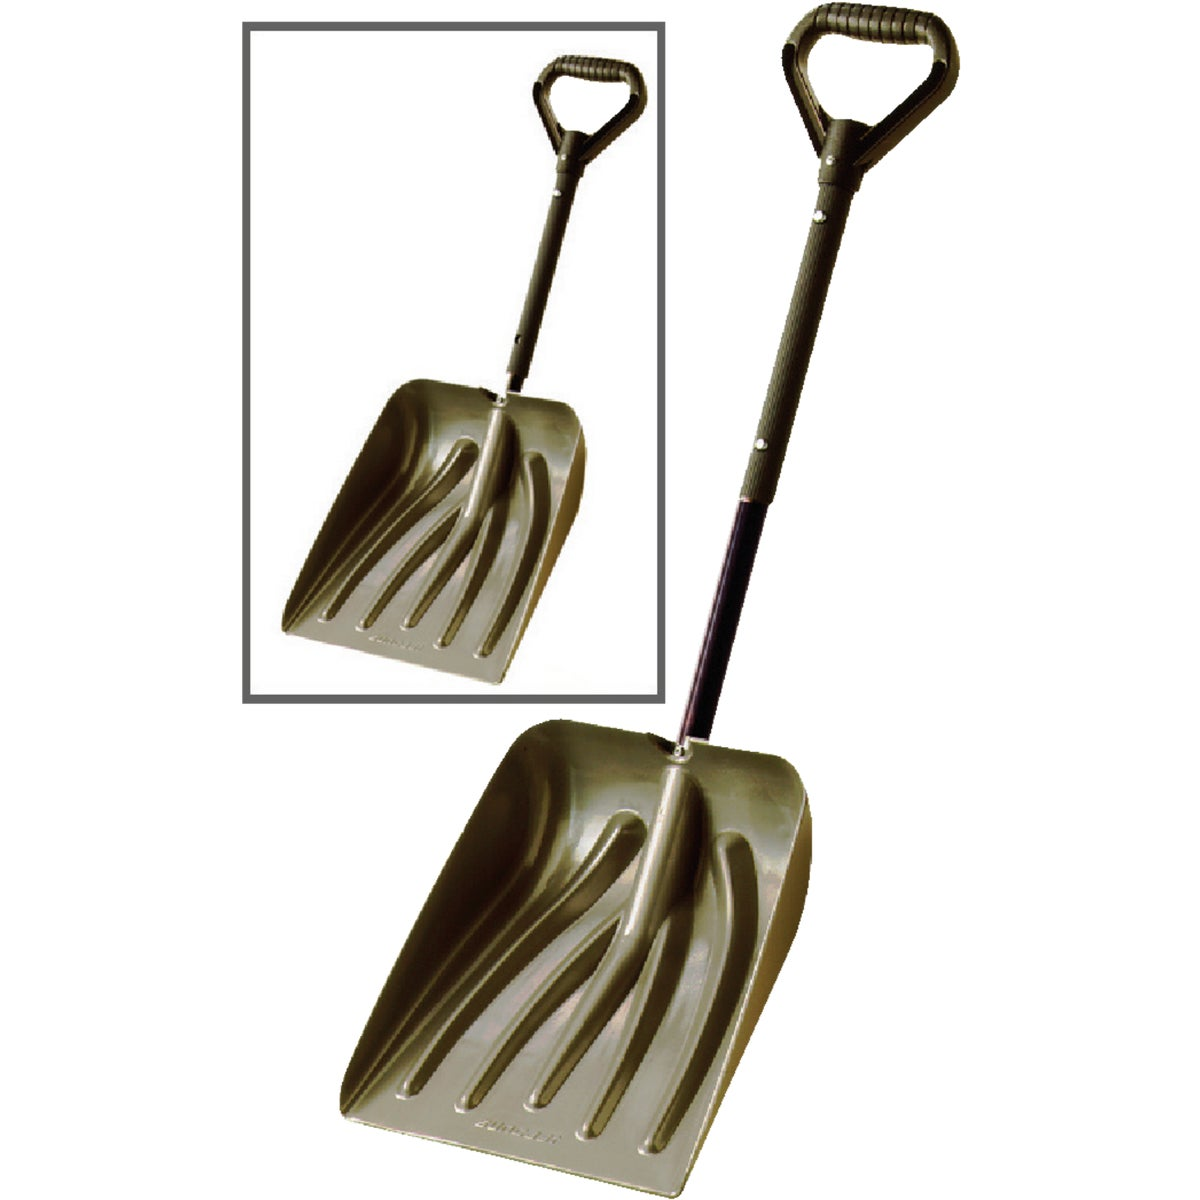 TELSCOP POLY CAR SHOVEL